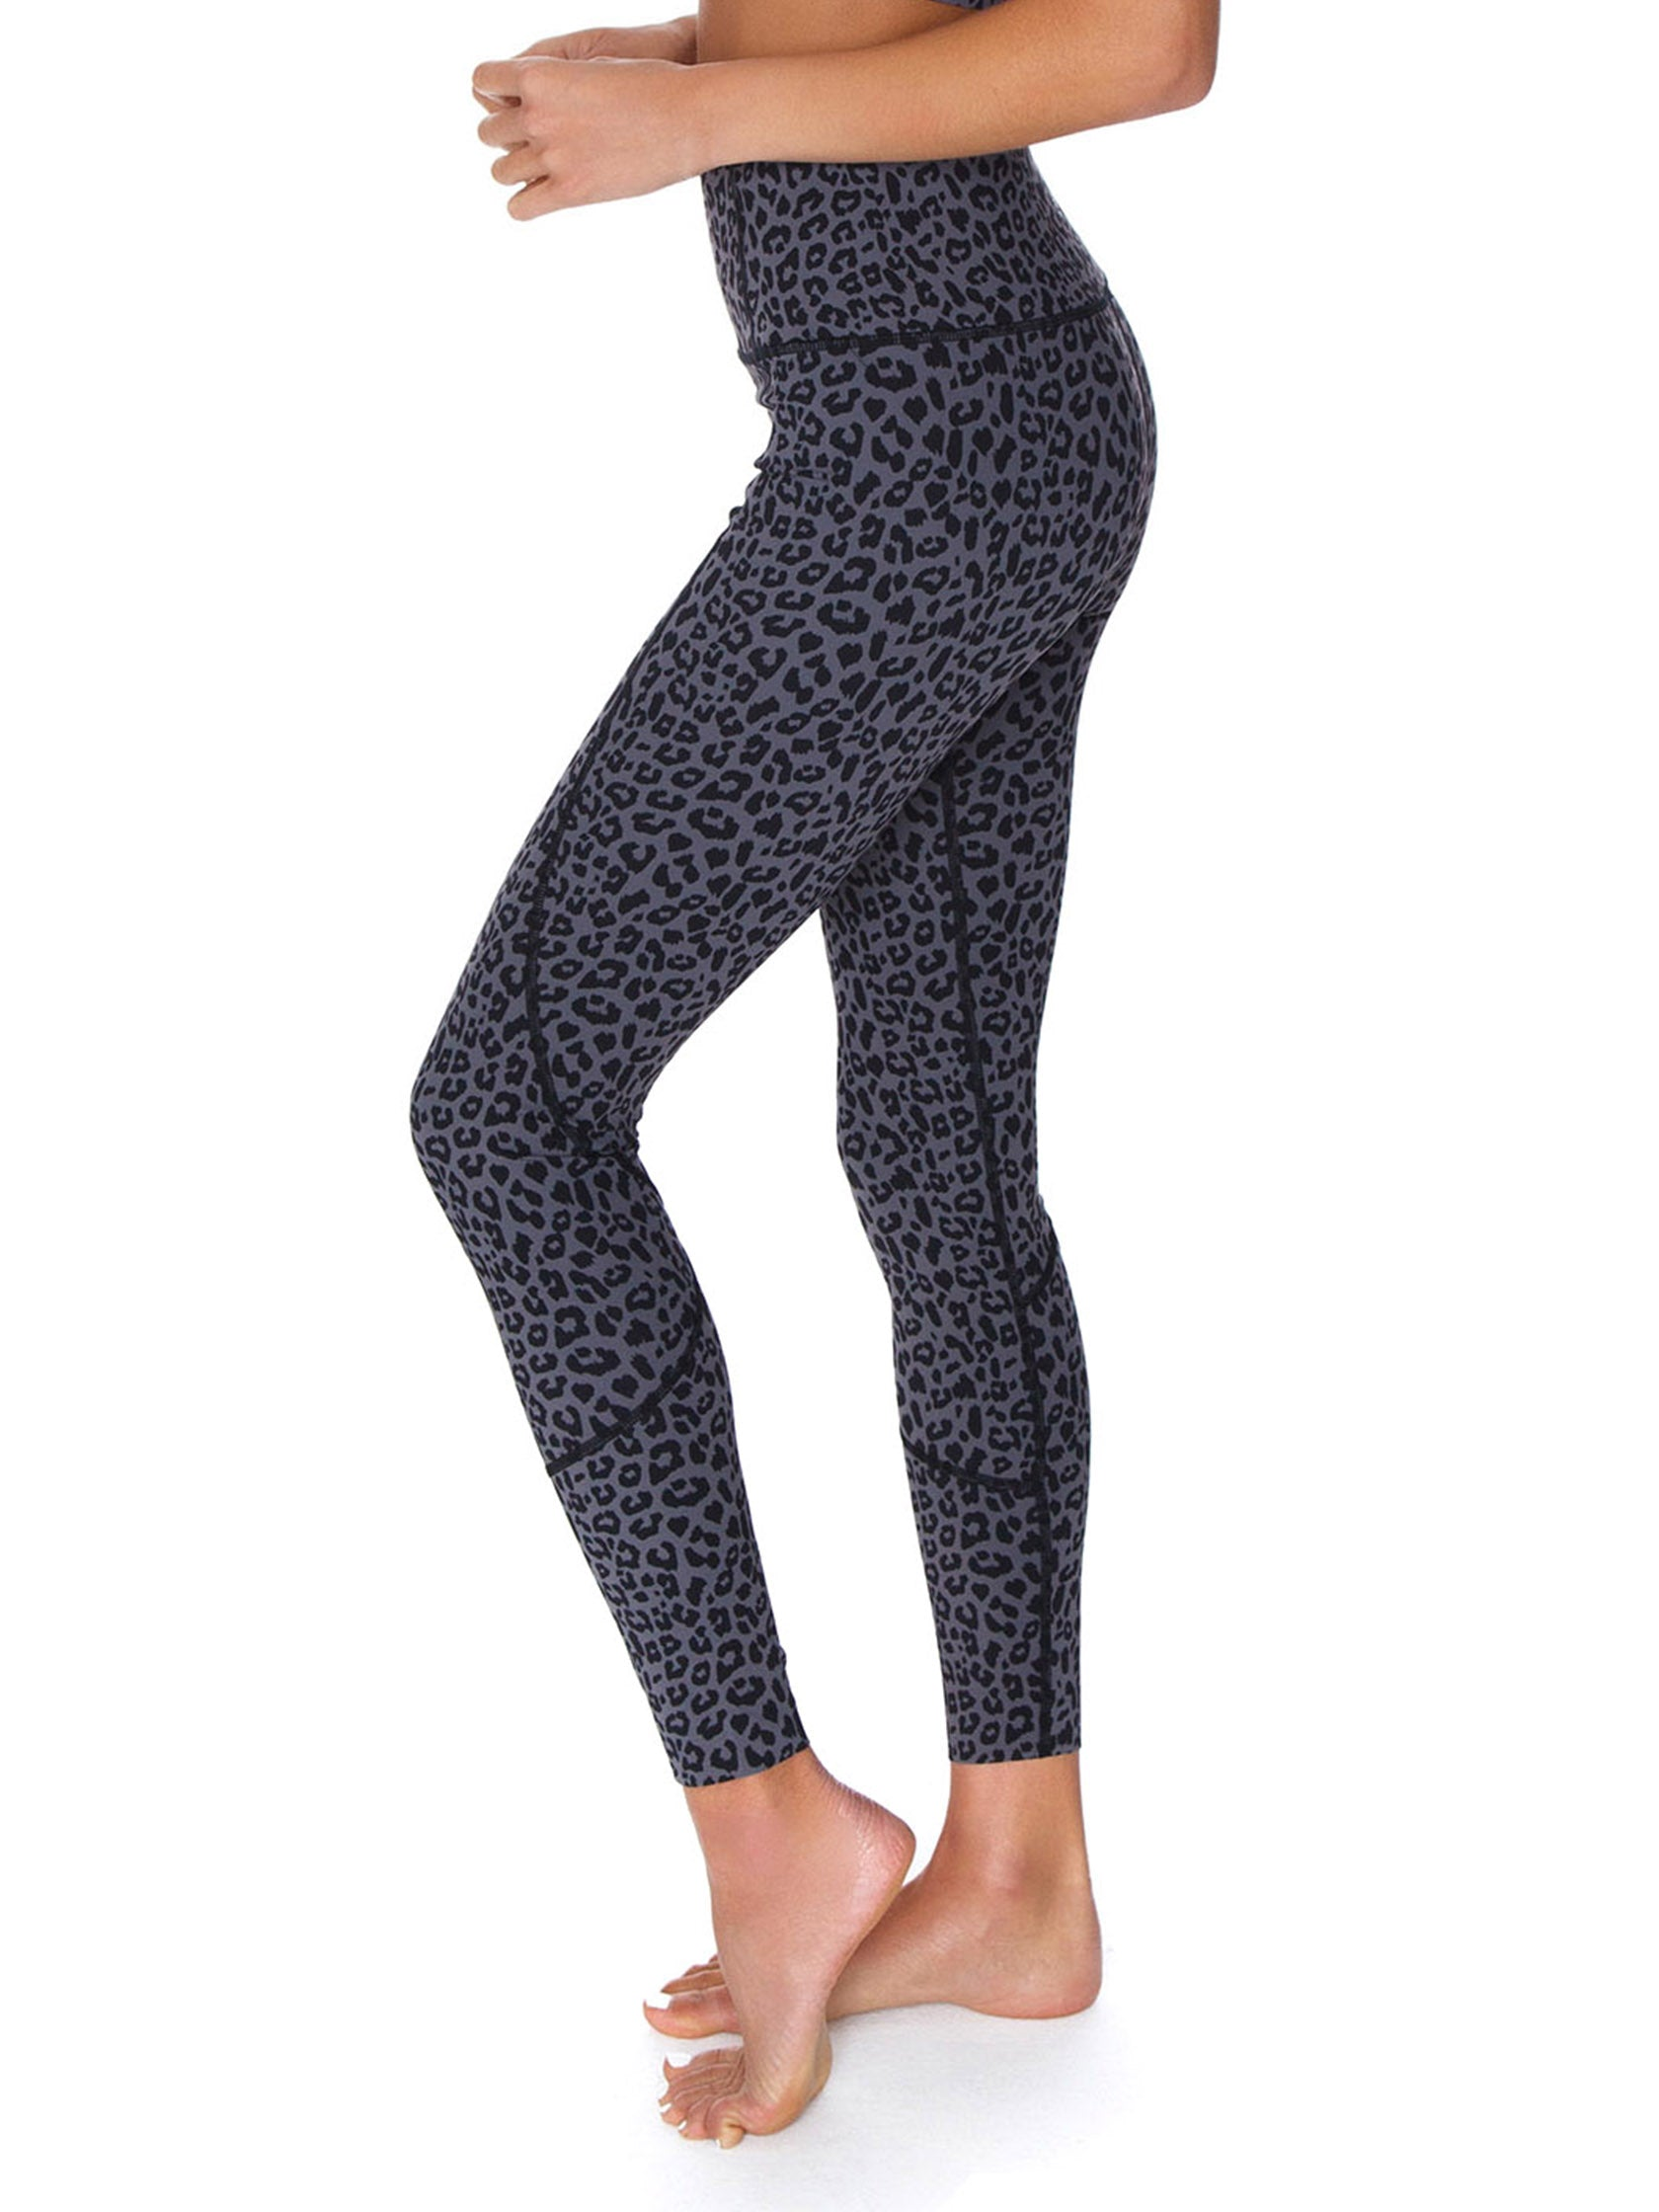 Women wearing a leggings rental from VARLEY called Bedford Tight